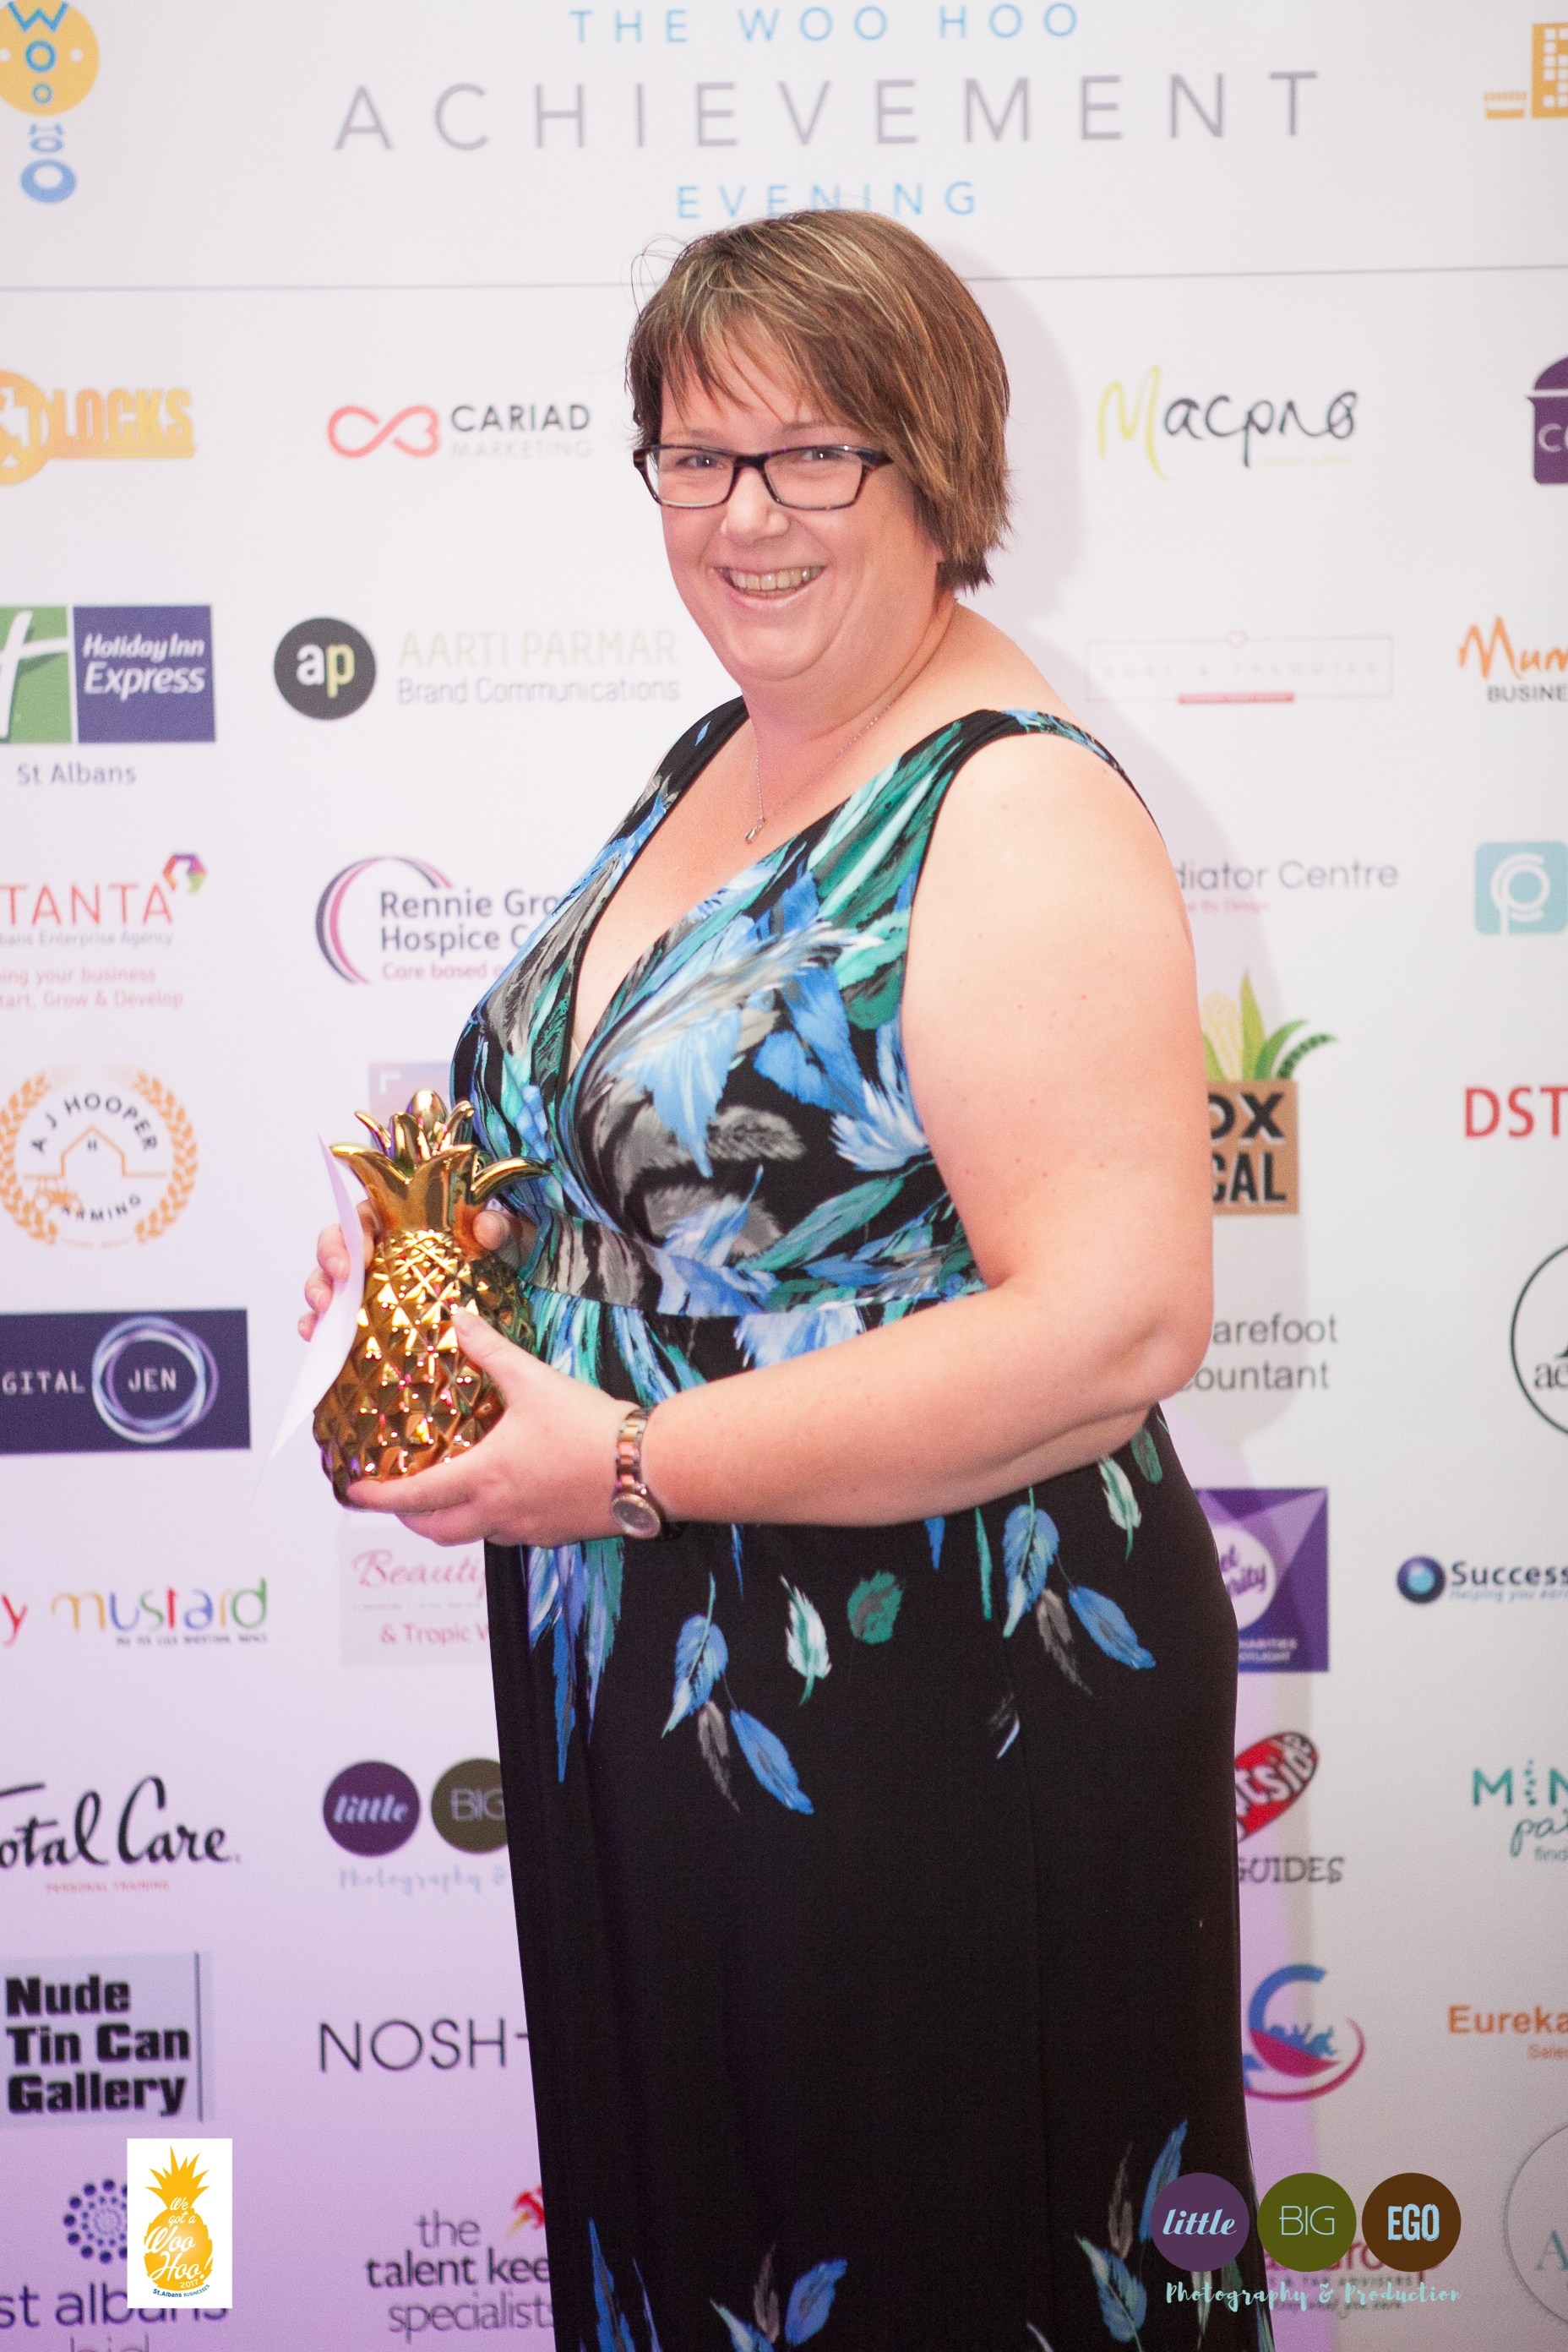 Jenny Soppet Smith, Jenny Smith, DigitalJen, St Albans, Businesses, Wordpress, award, woohoos